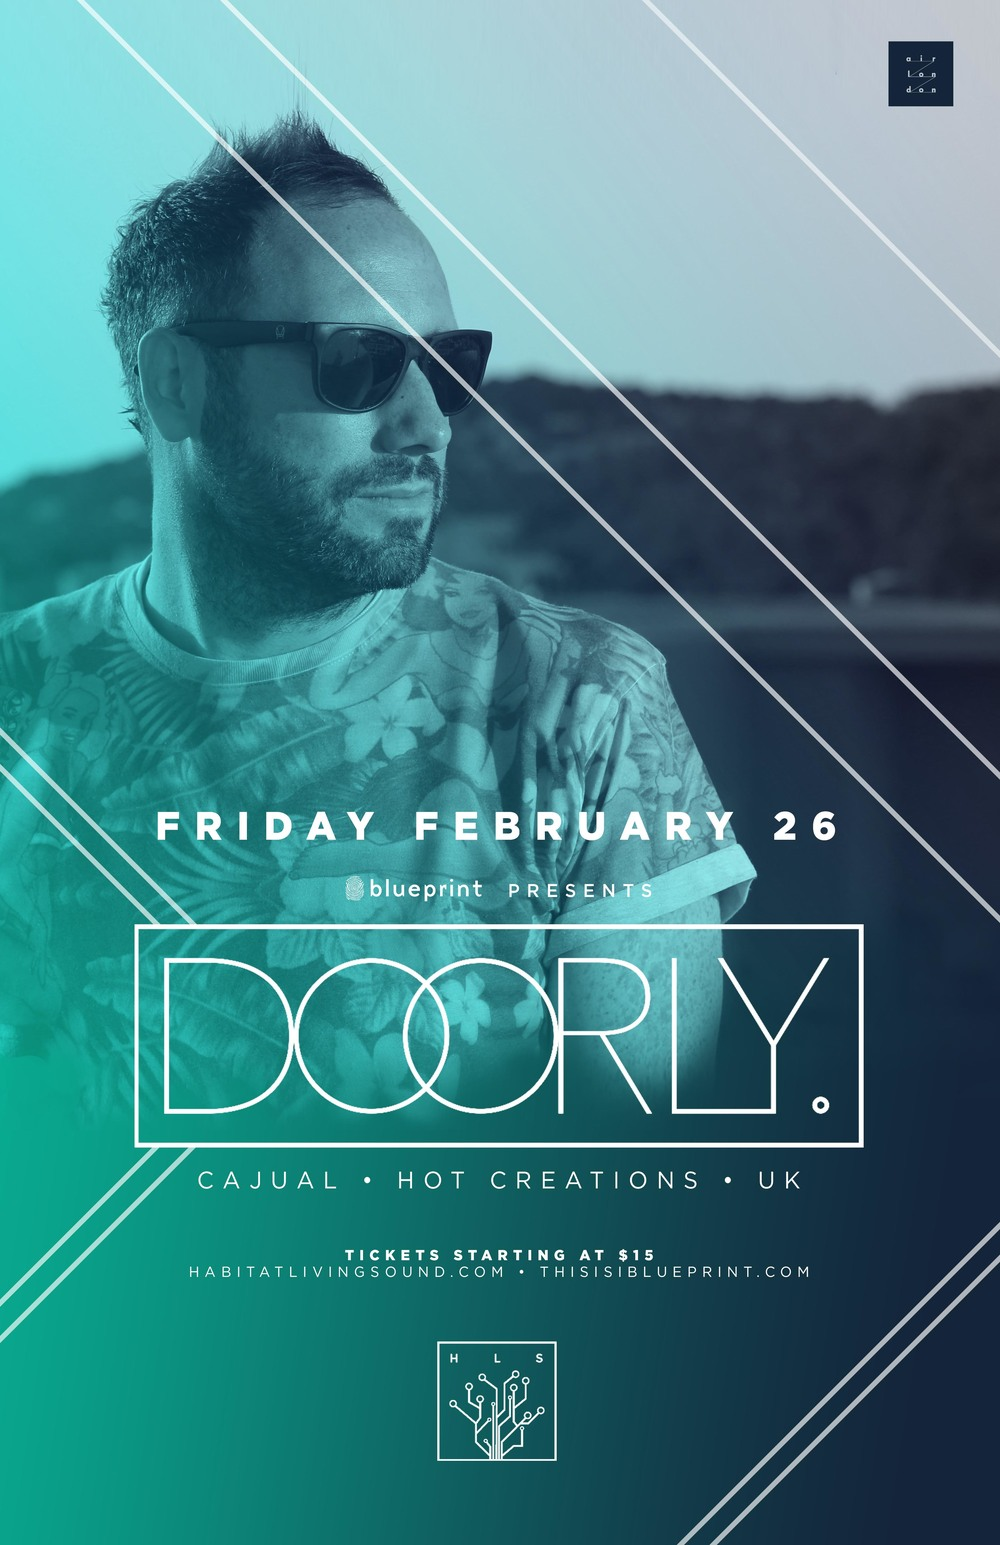 doorly-habitat-living-sound.jpeg